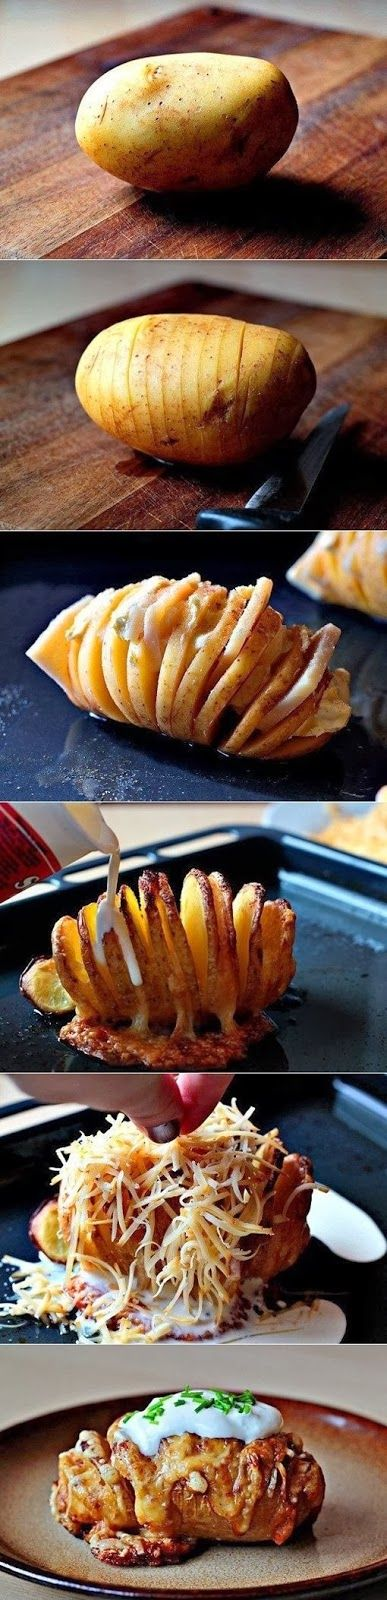 The Perfect Baked Potato Recipe - Anna Things and Thoughts